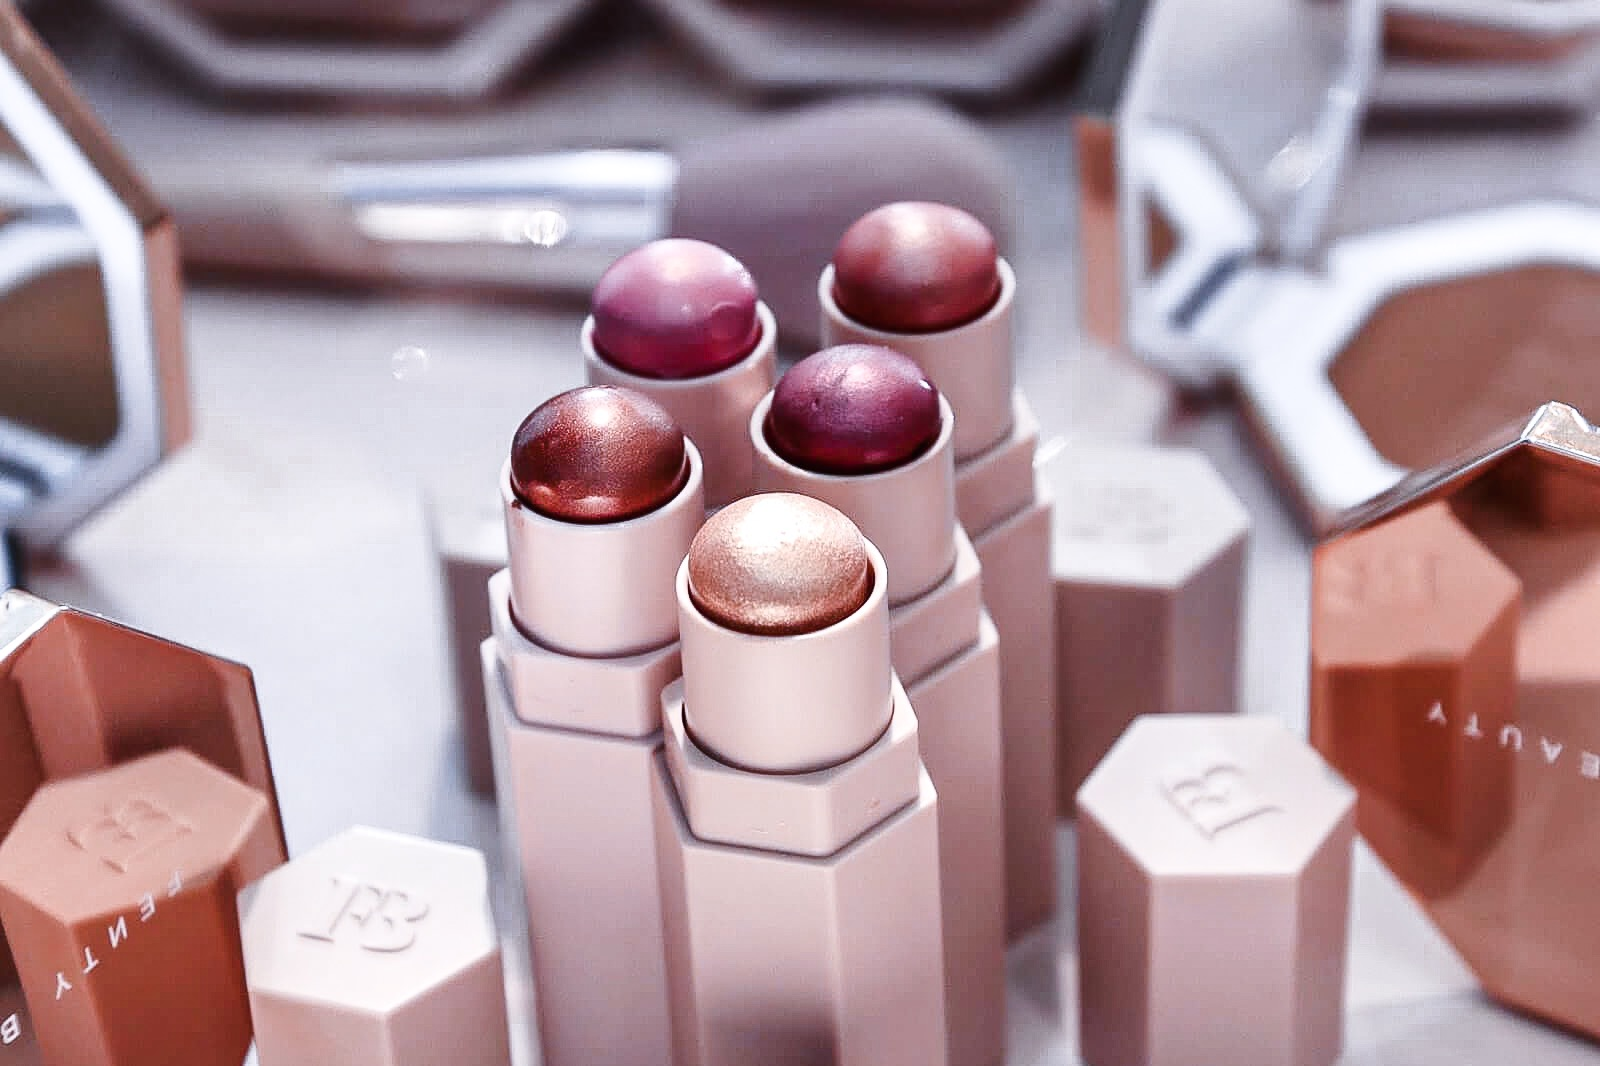 fenty-beauty-stick-highligter-nouvelles-teintes-automne-hiver-2019